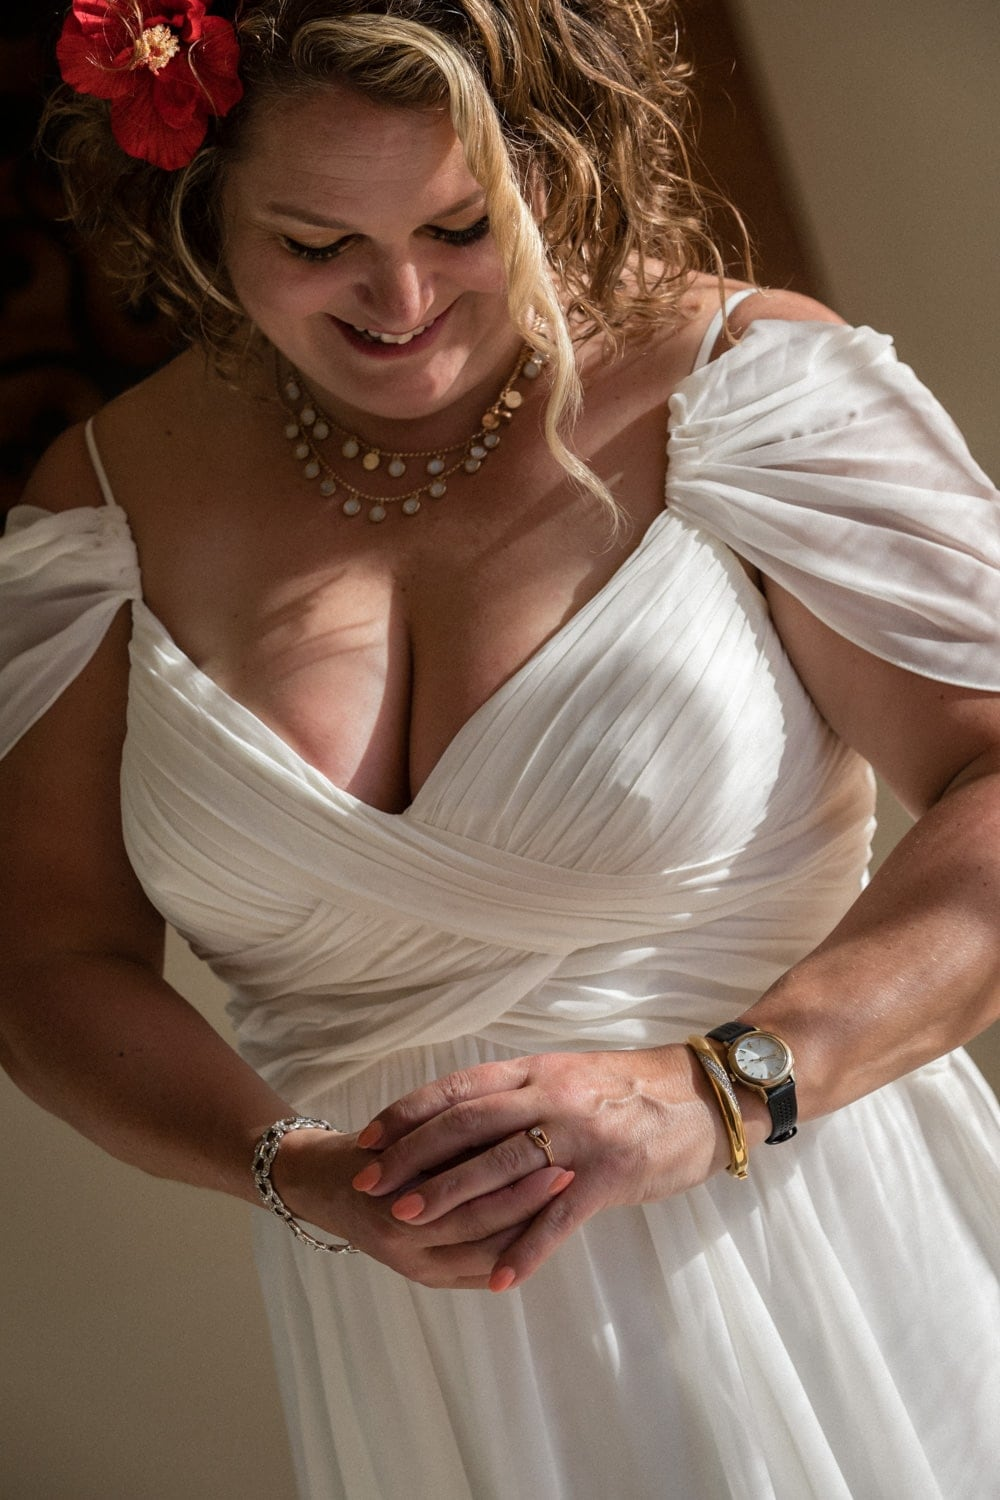 Bride in Costa Rica wearing white wedding dress looking at her ring.